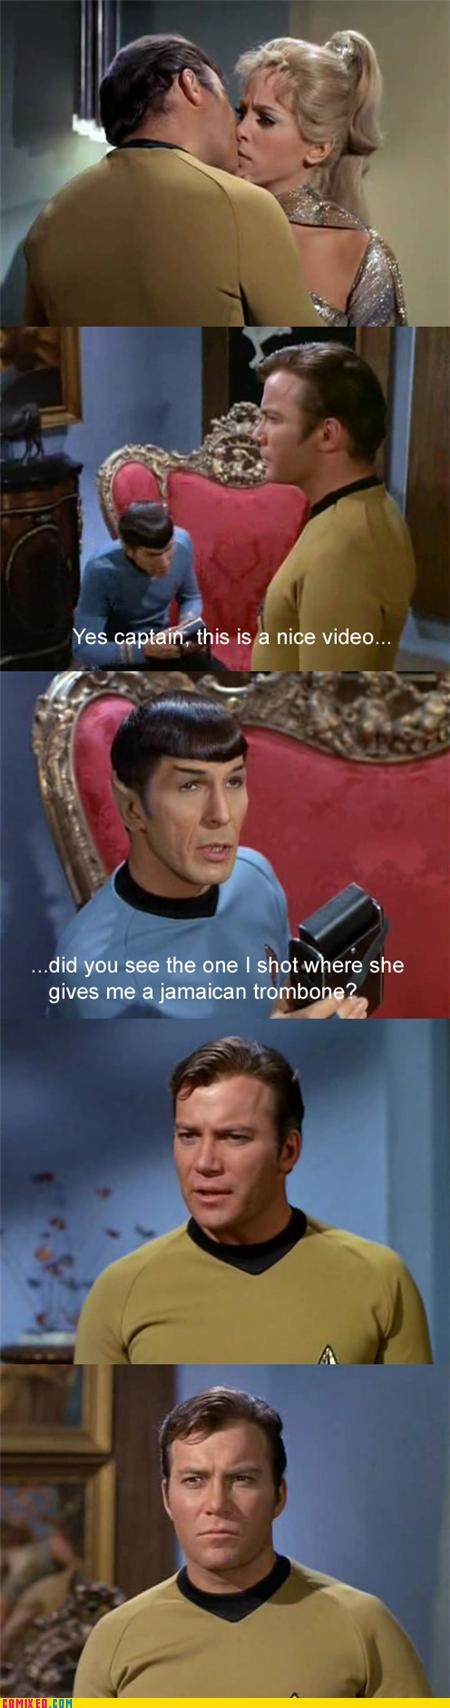 Captain Kirk learn something new every day oral sex sexual acts Spock Star Trek Video - 4256871424